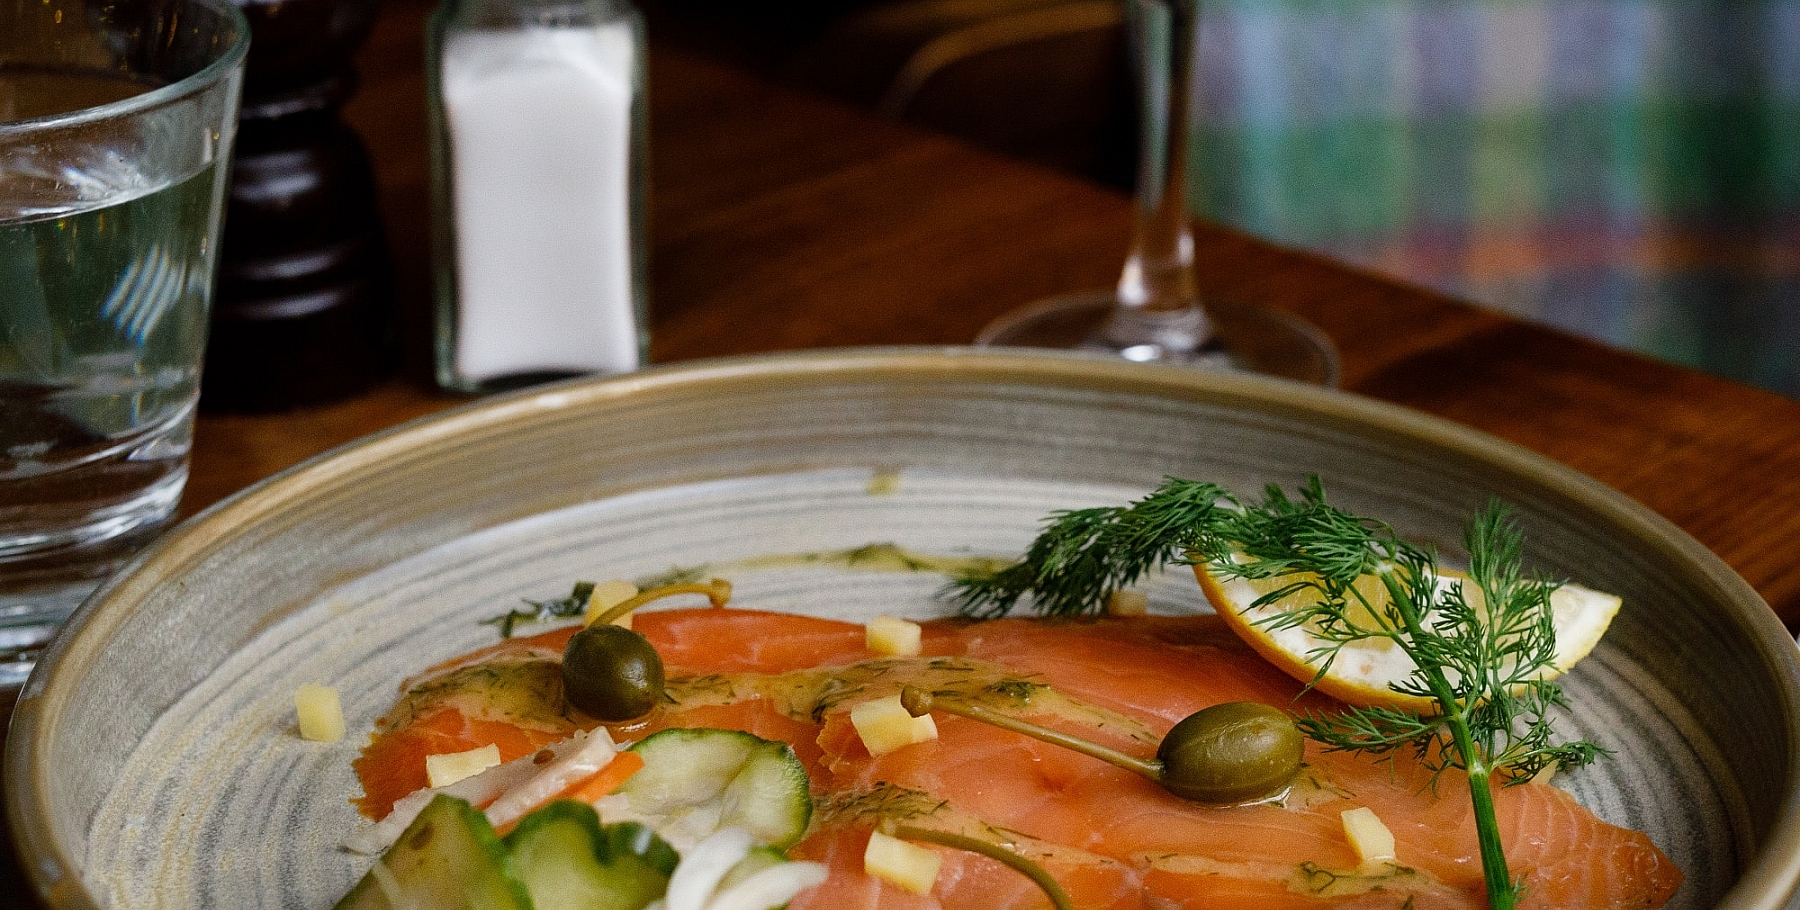 Hederman's Smoked Salmon at the Farmgate Cafe in the English Market, Cork city Photo: Clare O'Rourke